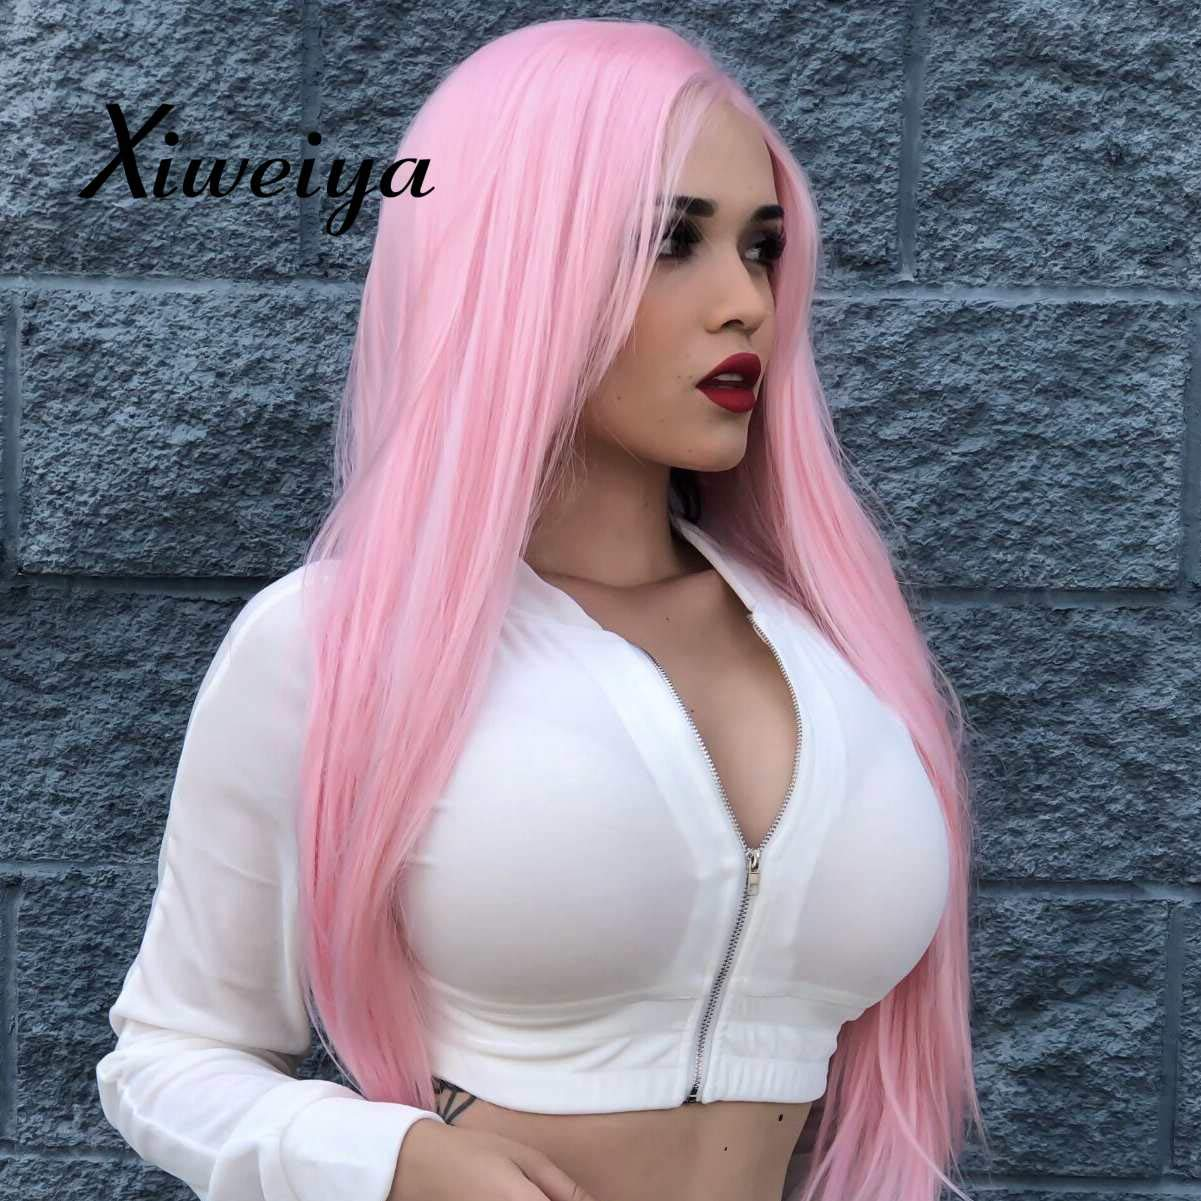 Xiweiya Synthetic Lace Front Wigs With Heat Resistant Fiber White, Light Blonde, Blonde, Pink, Mix color pink color wig for women, drag queen silky straight hair replacement wig (Pink) by xiweiya